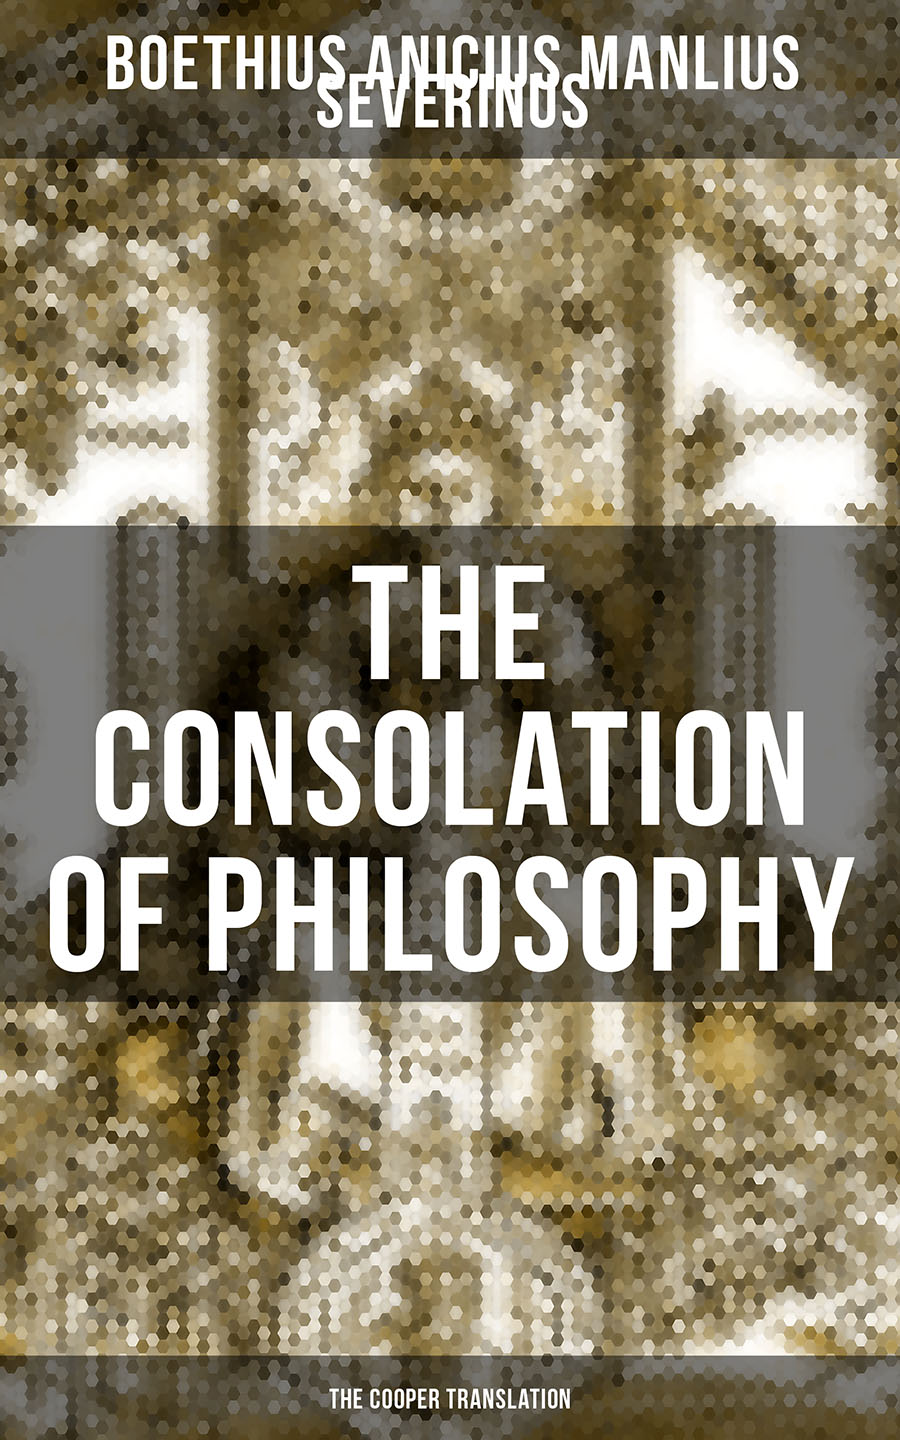 Boethius THE CONSOLATION OF PHILOSOPHY (The Cooper Translation) wireless conference simultaneous translation tour guide system simultaneous translation headphones explain the device